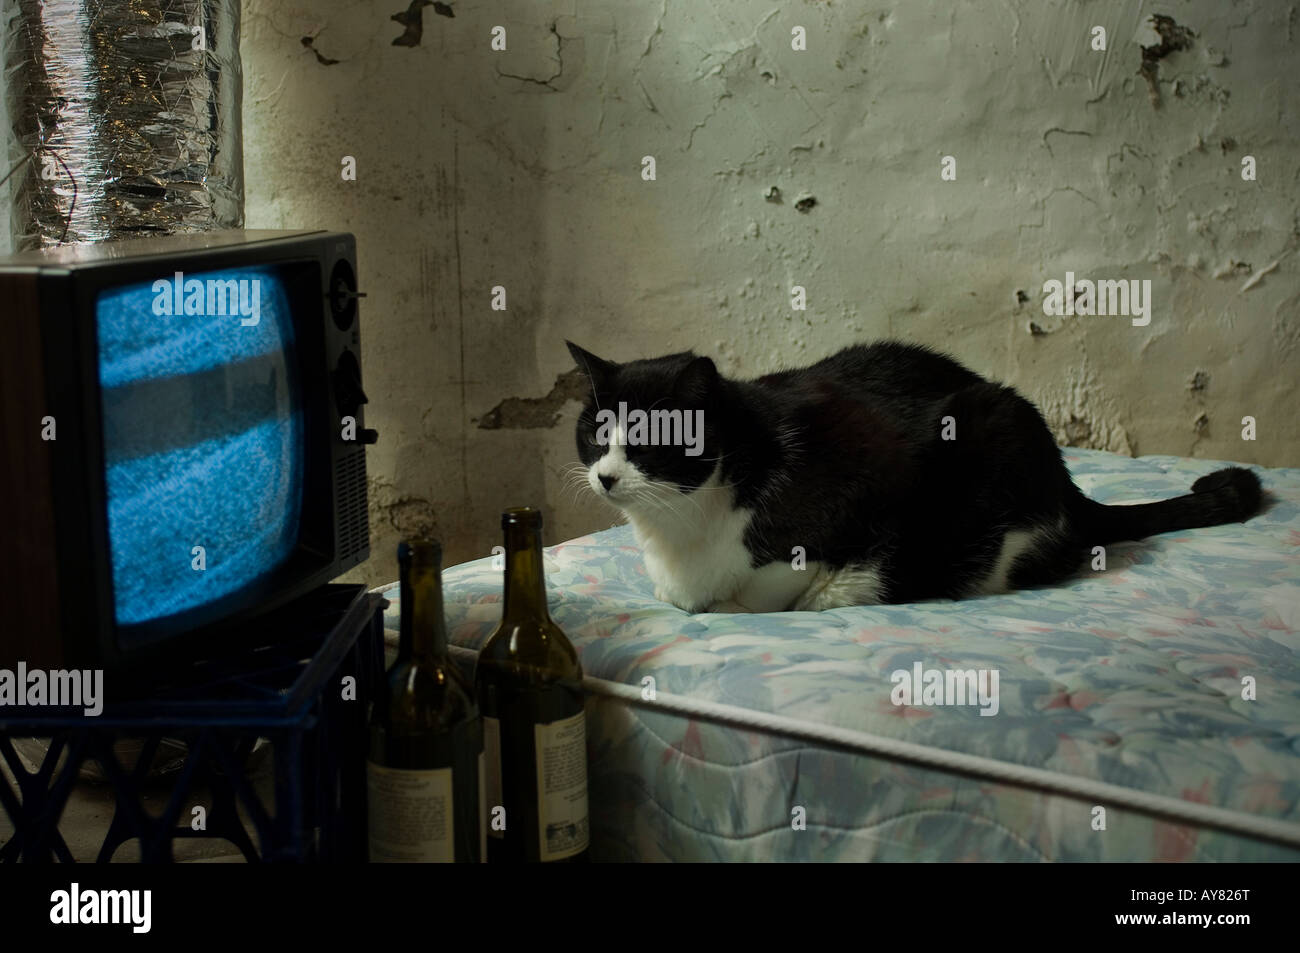 A black and white cat sitting on a mattress with wine and a TV - Stock Image